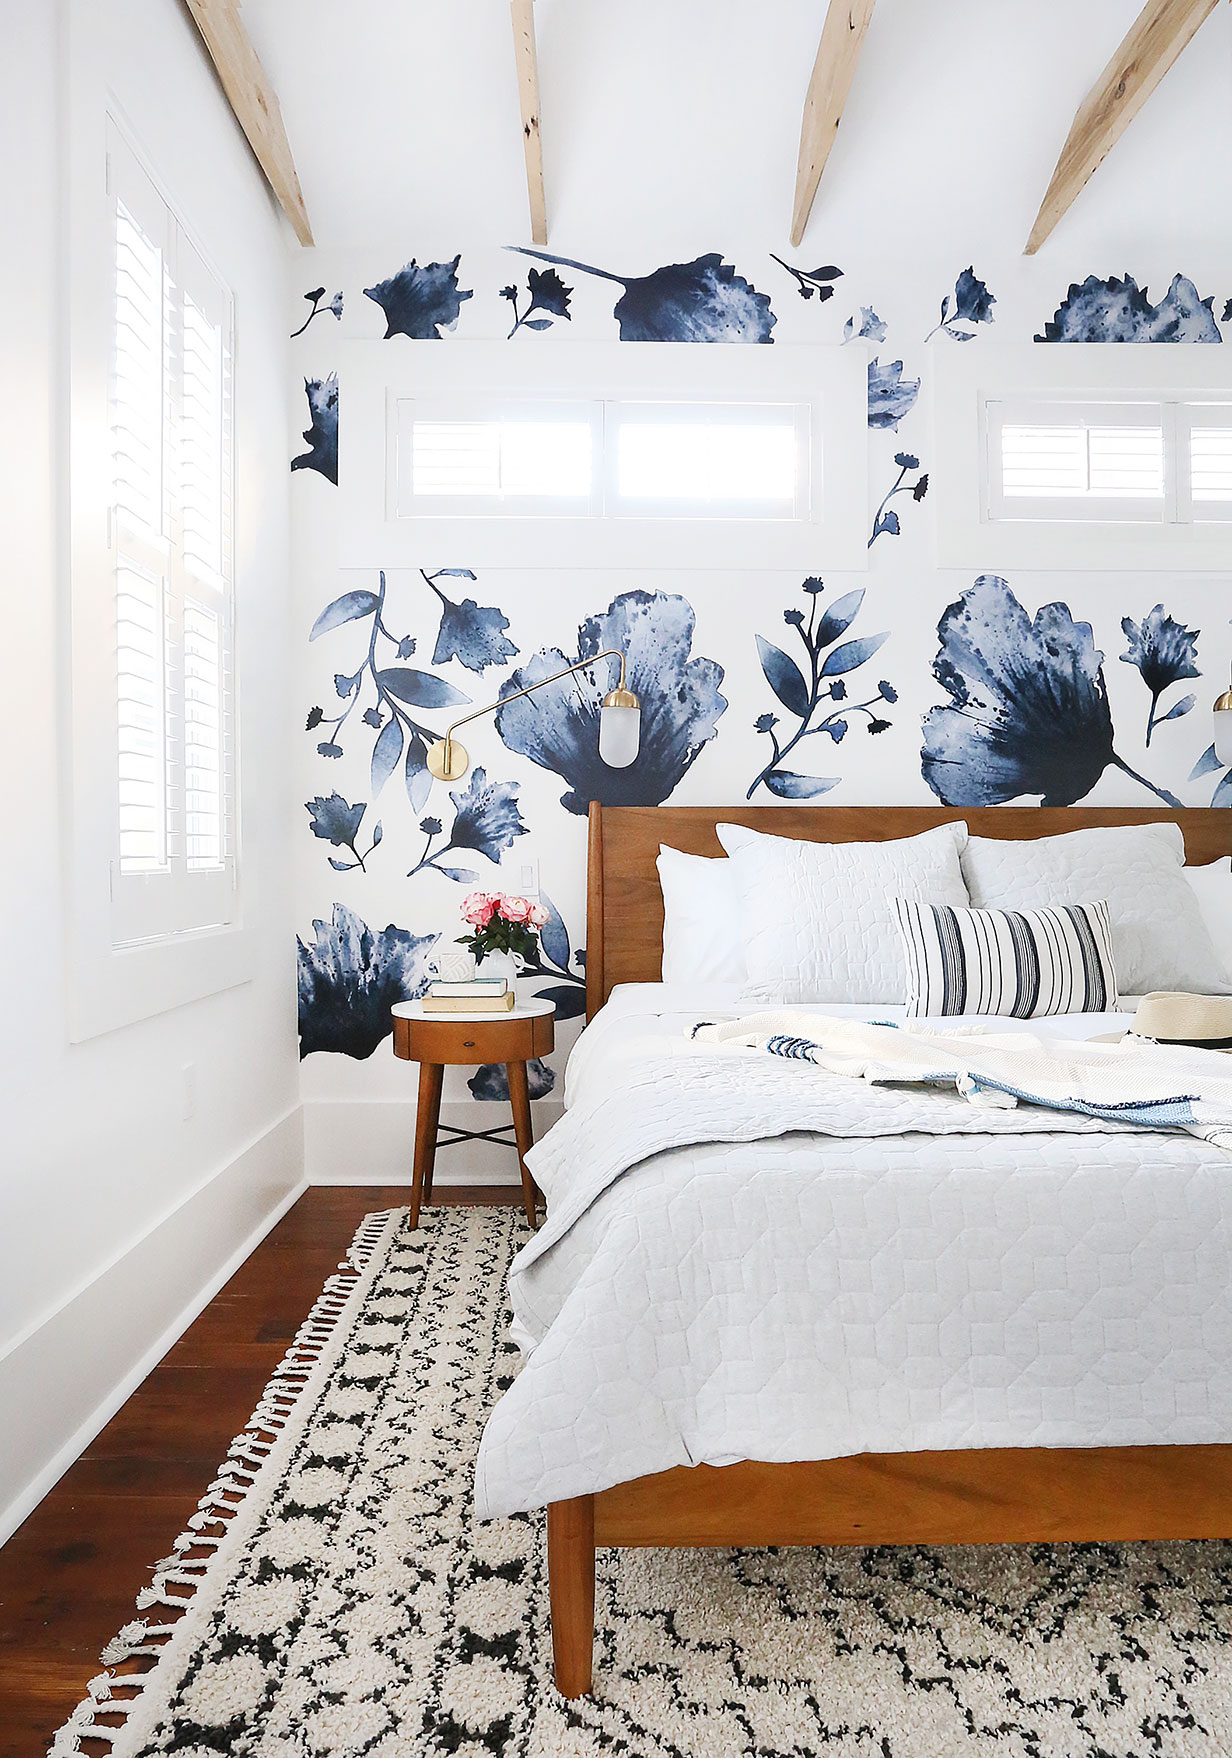 Floral Decals   /   Sconce   /   Bed   /   Bedding   /   Rug   /   Striped Pillow   /   Nightstand